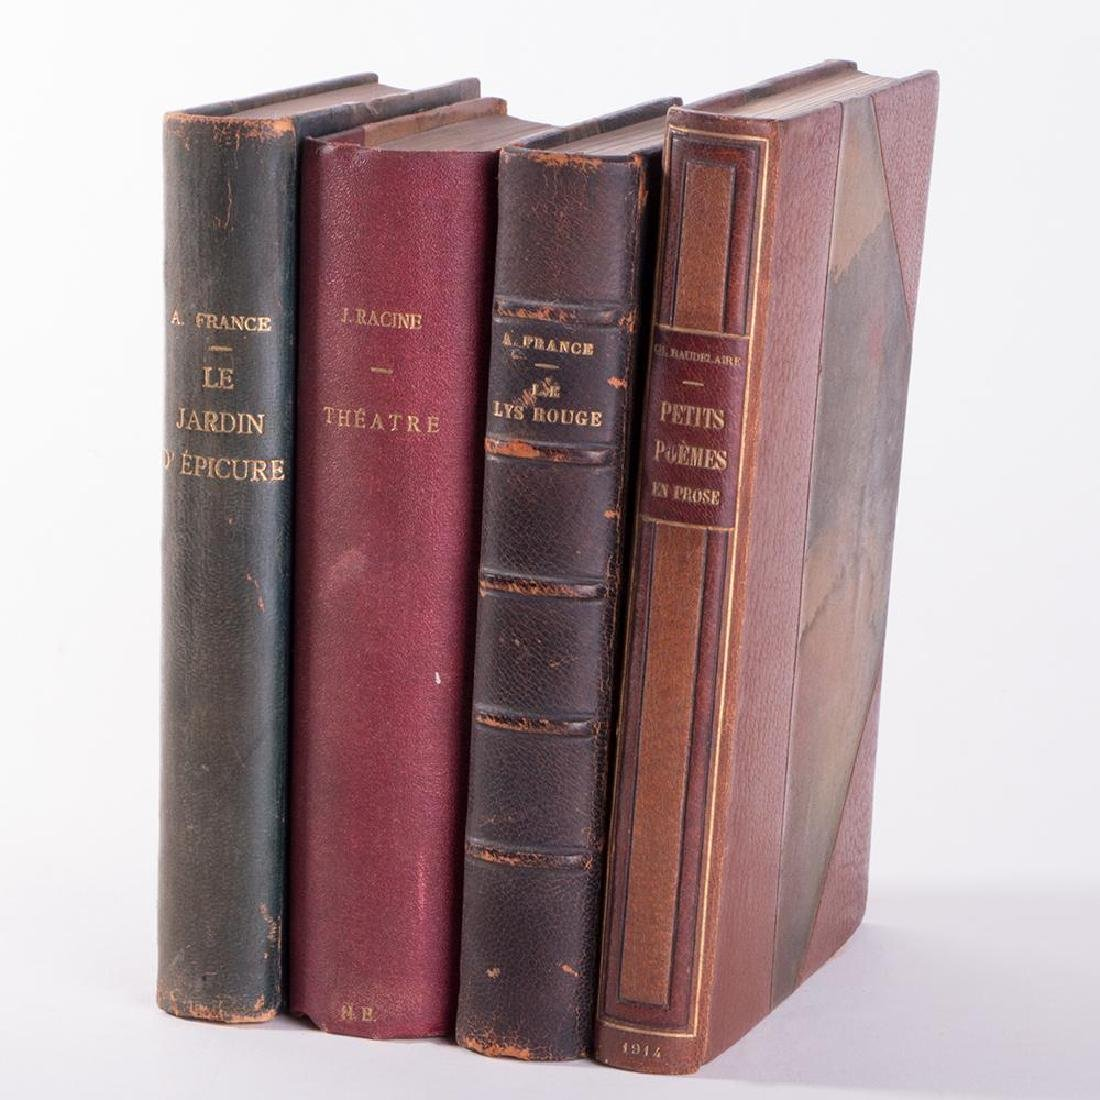 Collection of Four French works: Anatole France, J. Rac